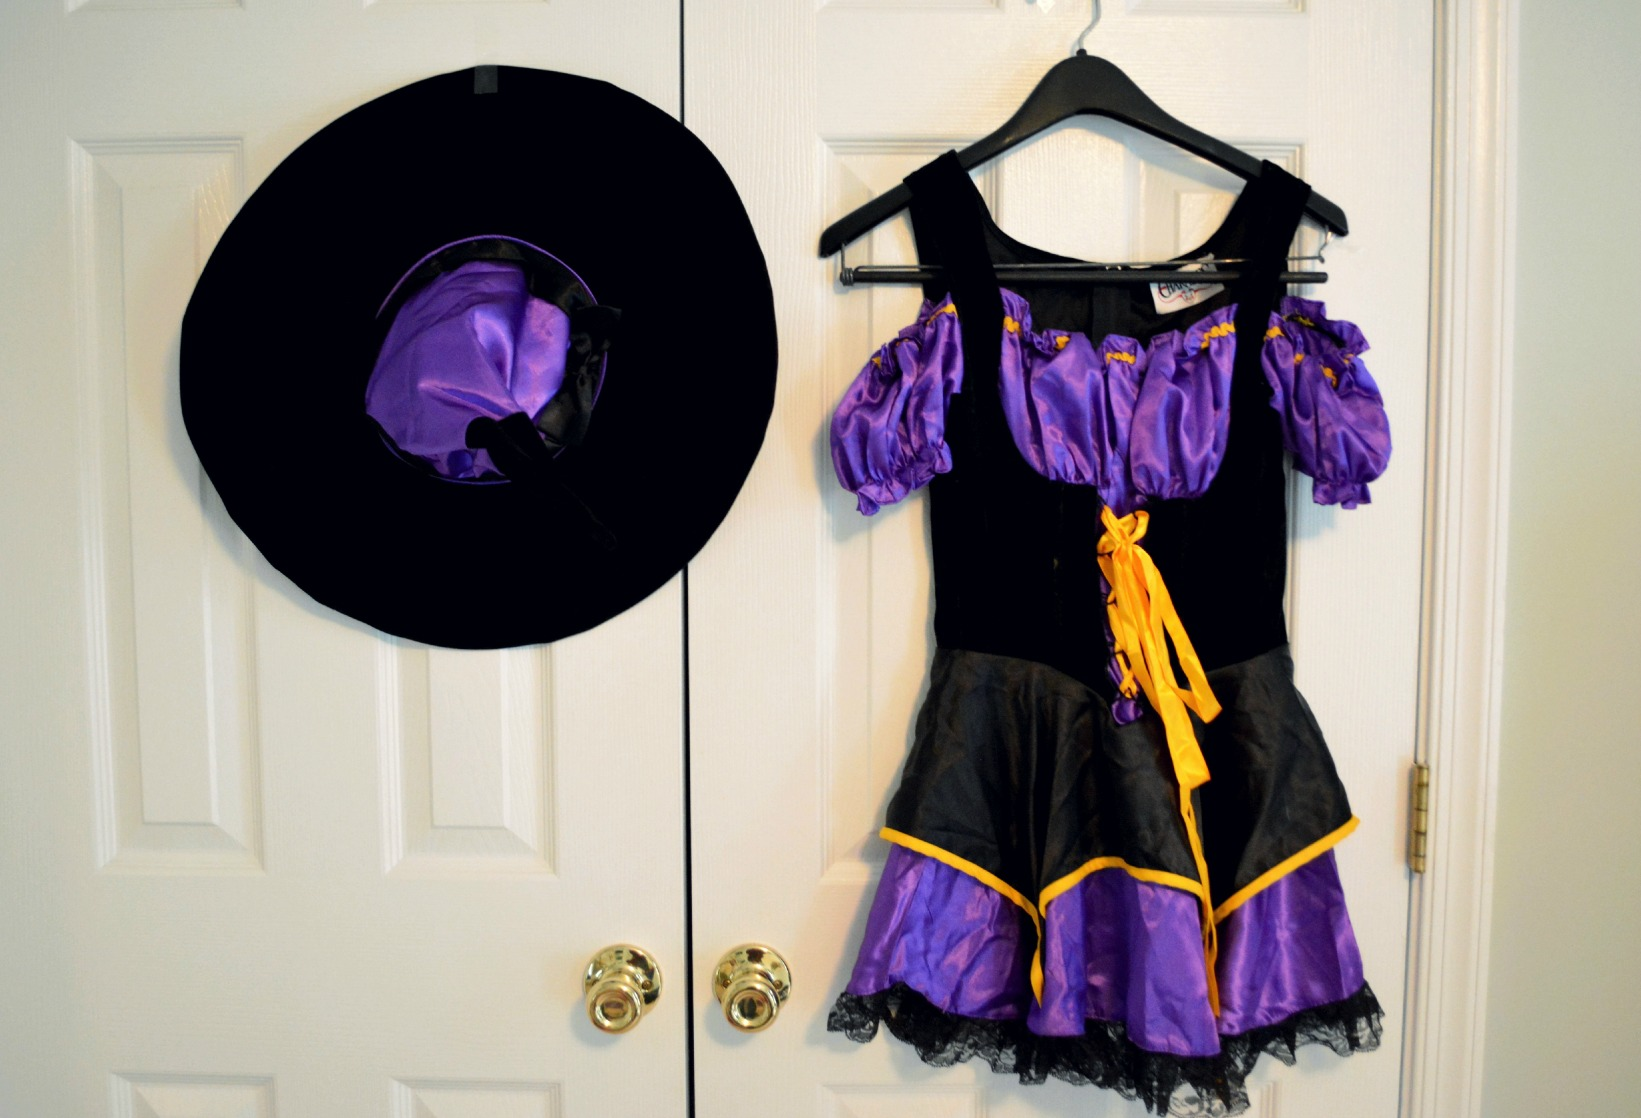 The Link Between Halloween Costumes and Body Image